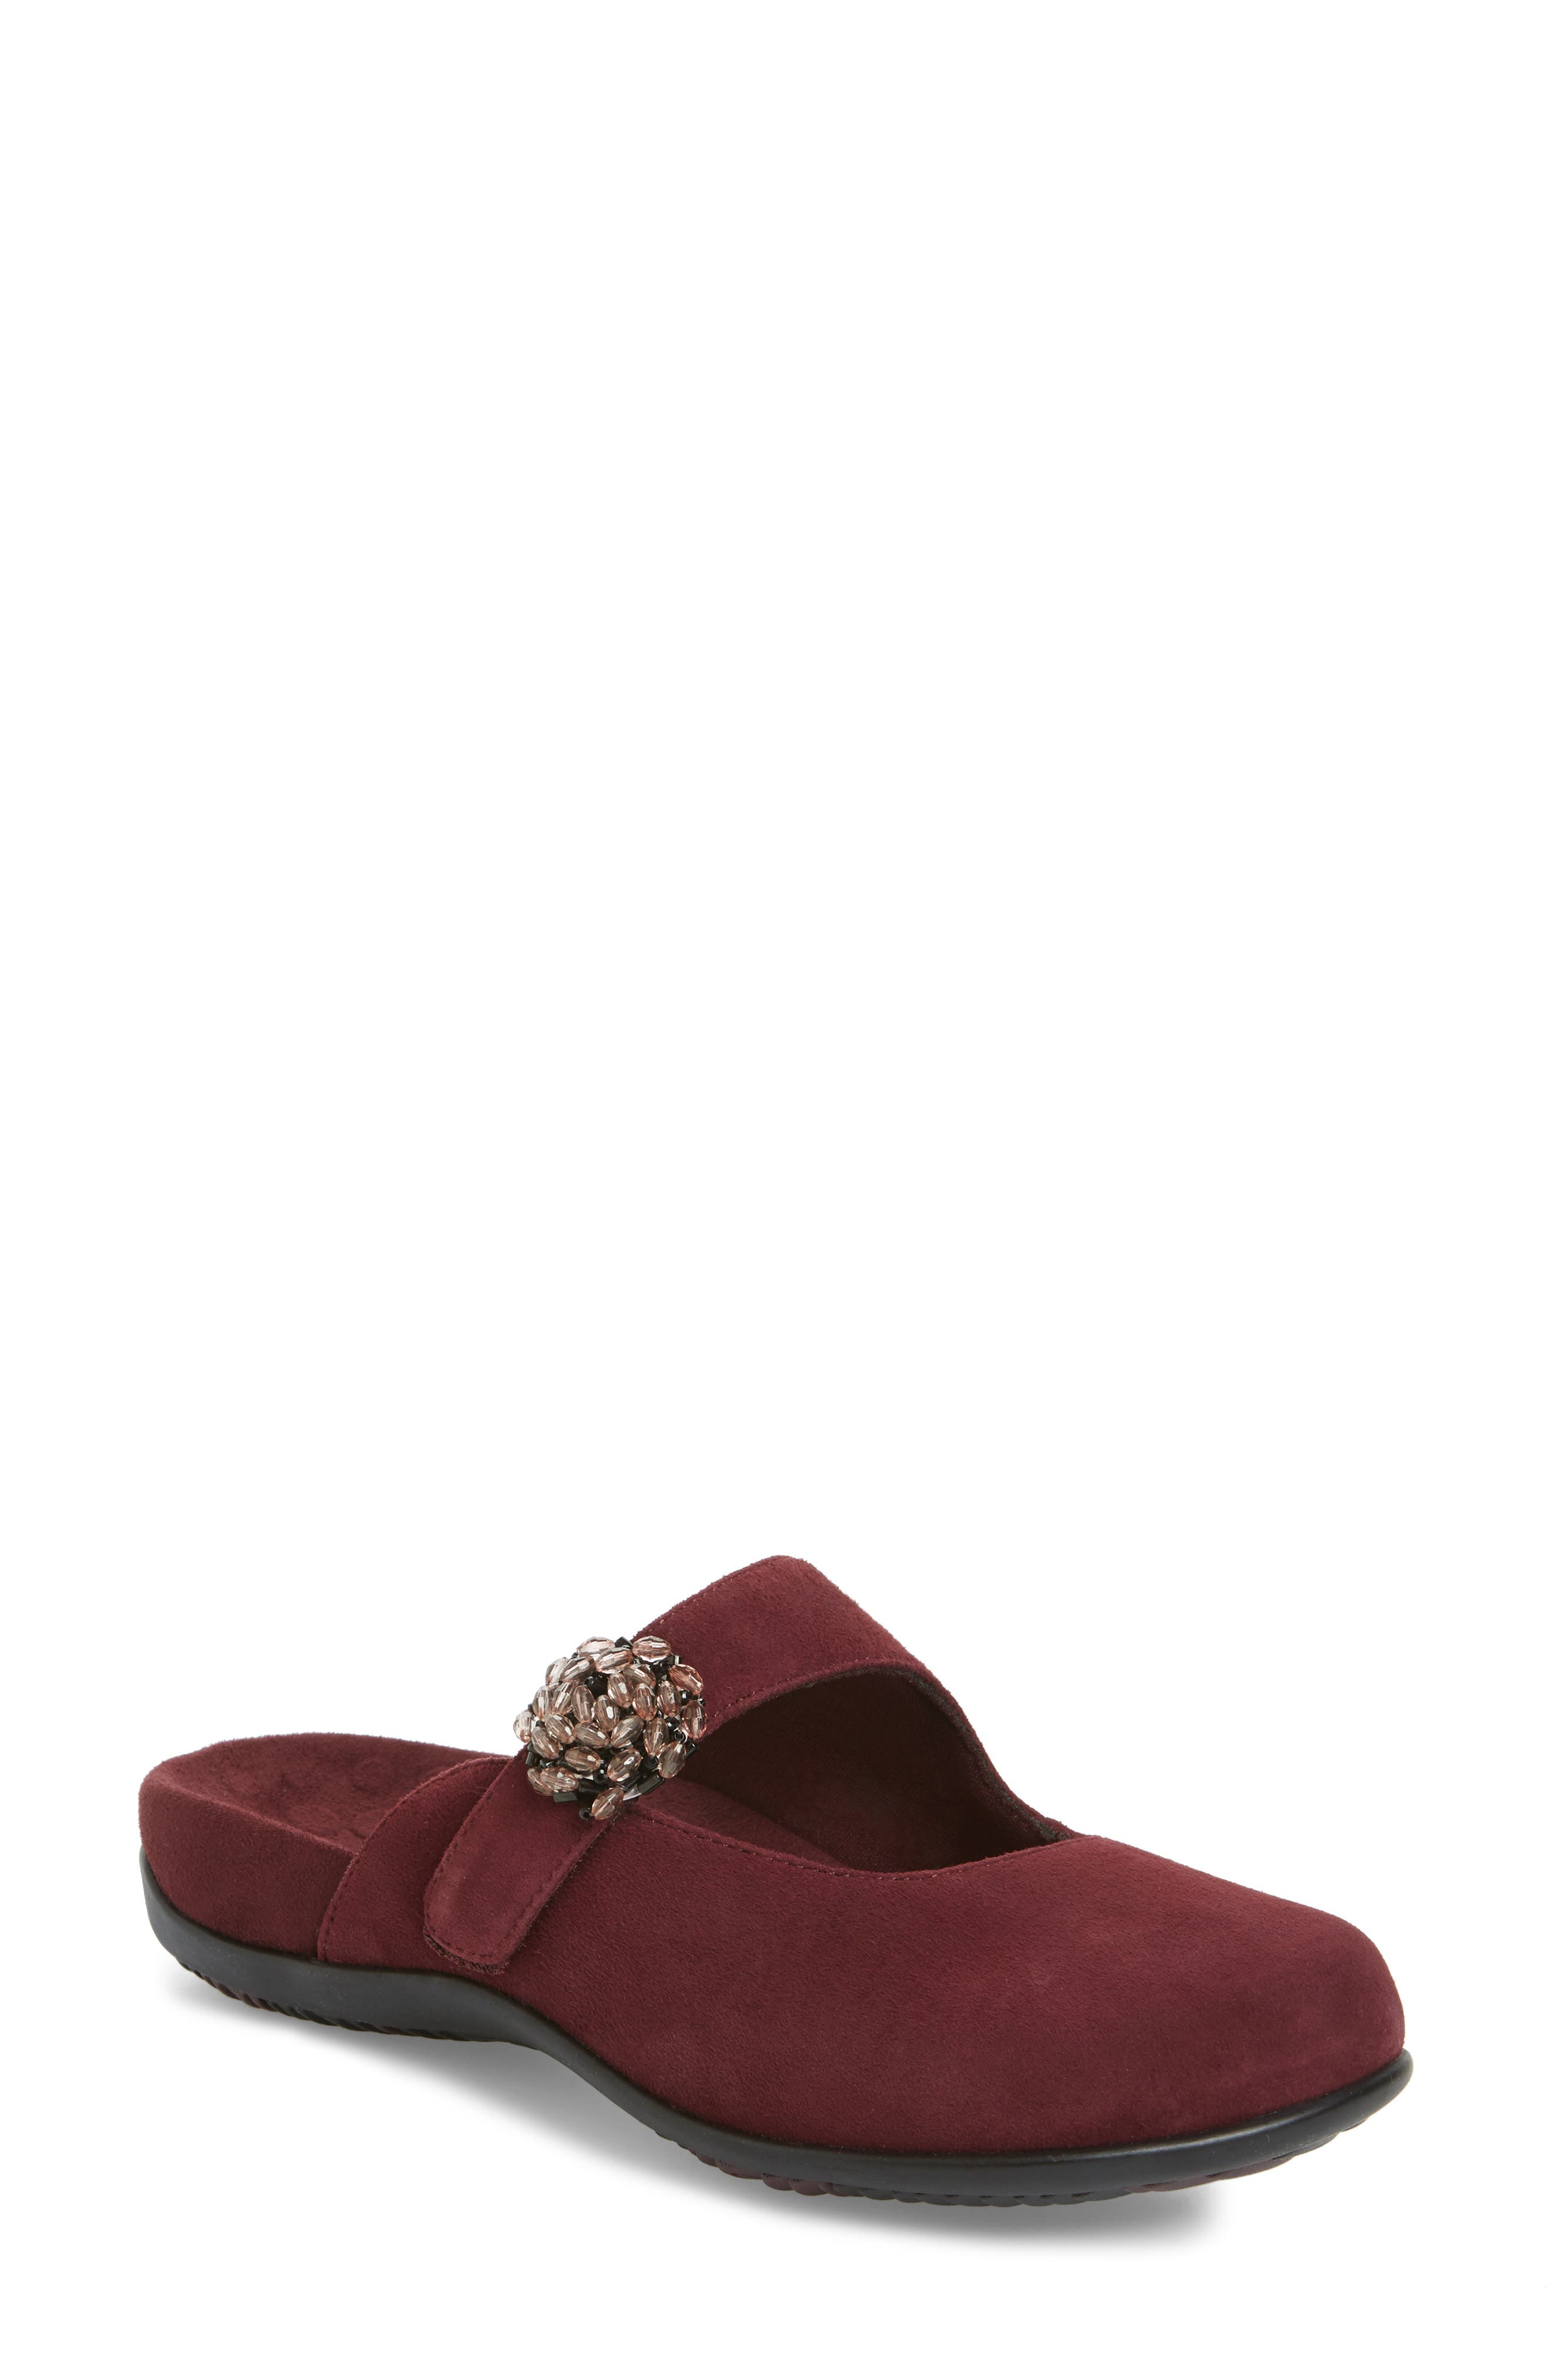 Rest Joan Mary Jane Mule,                             Main thumbnail 1, color,                             Merlot Suede